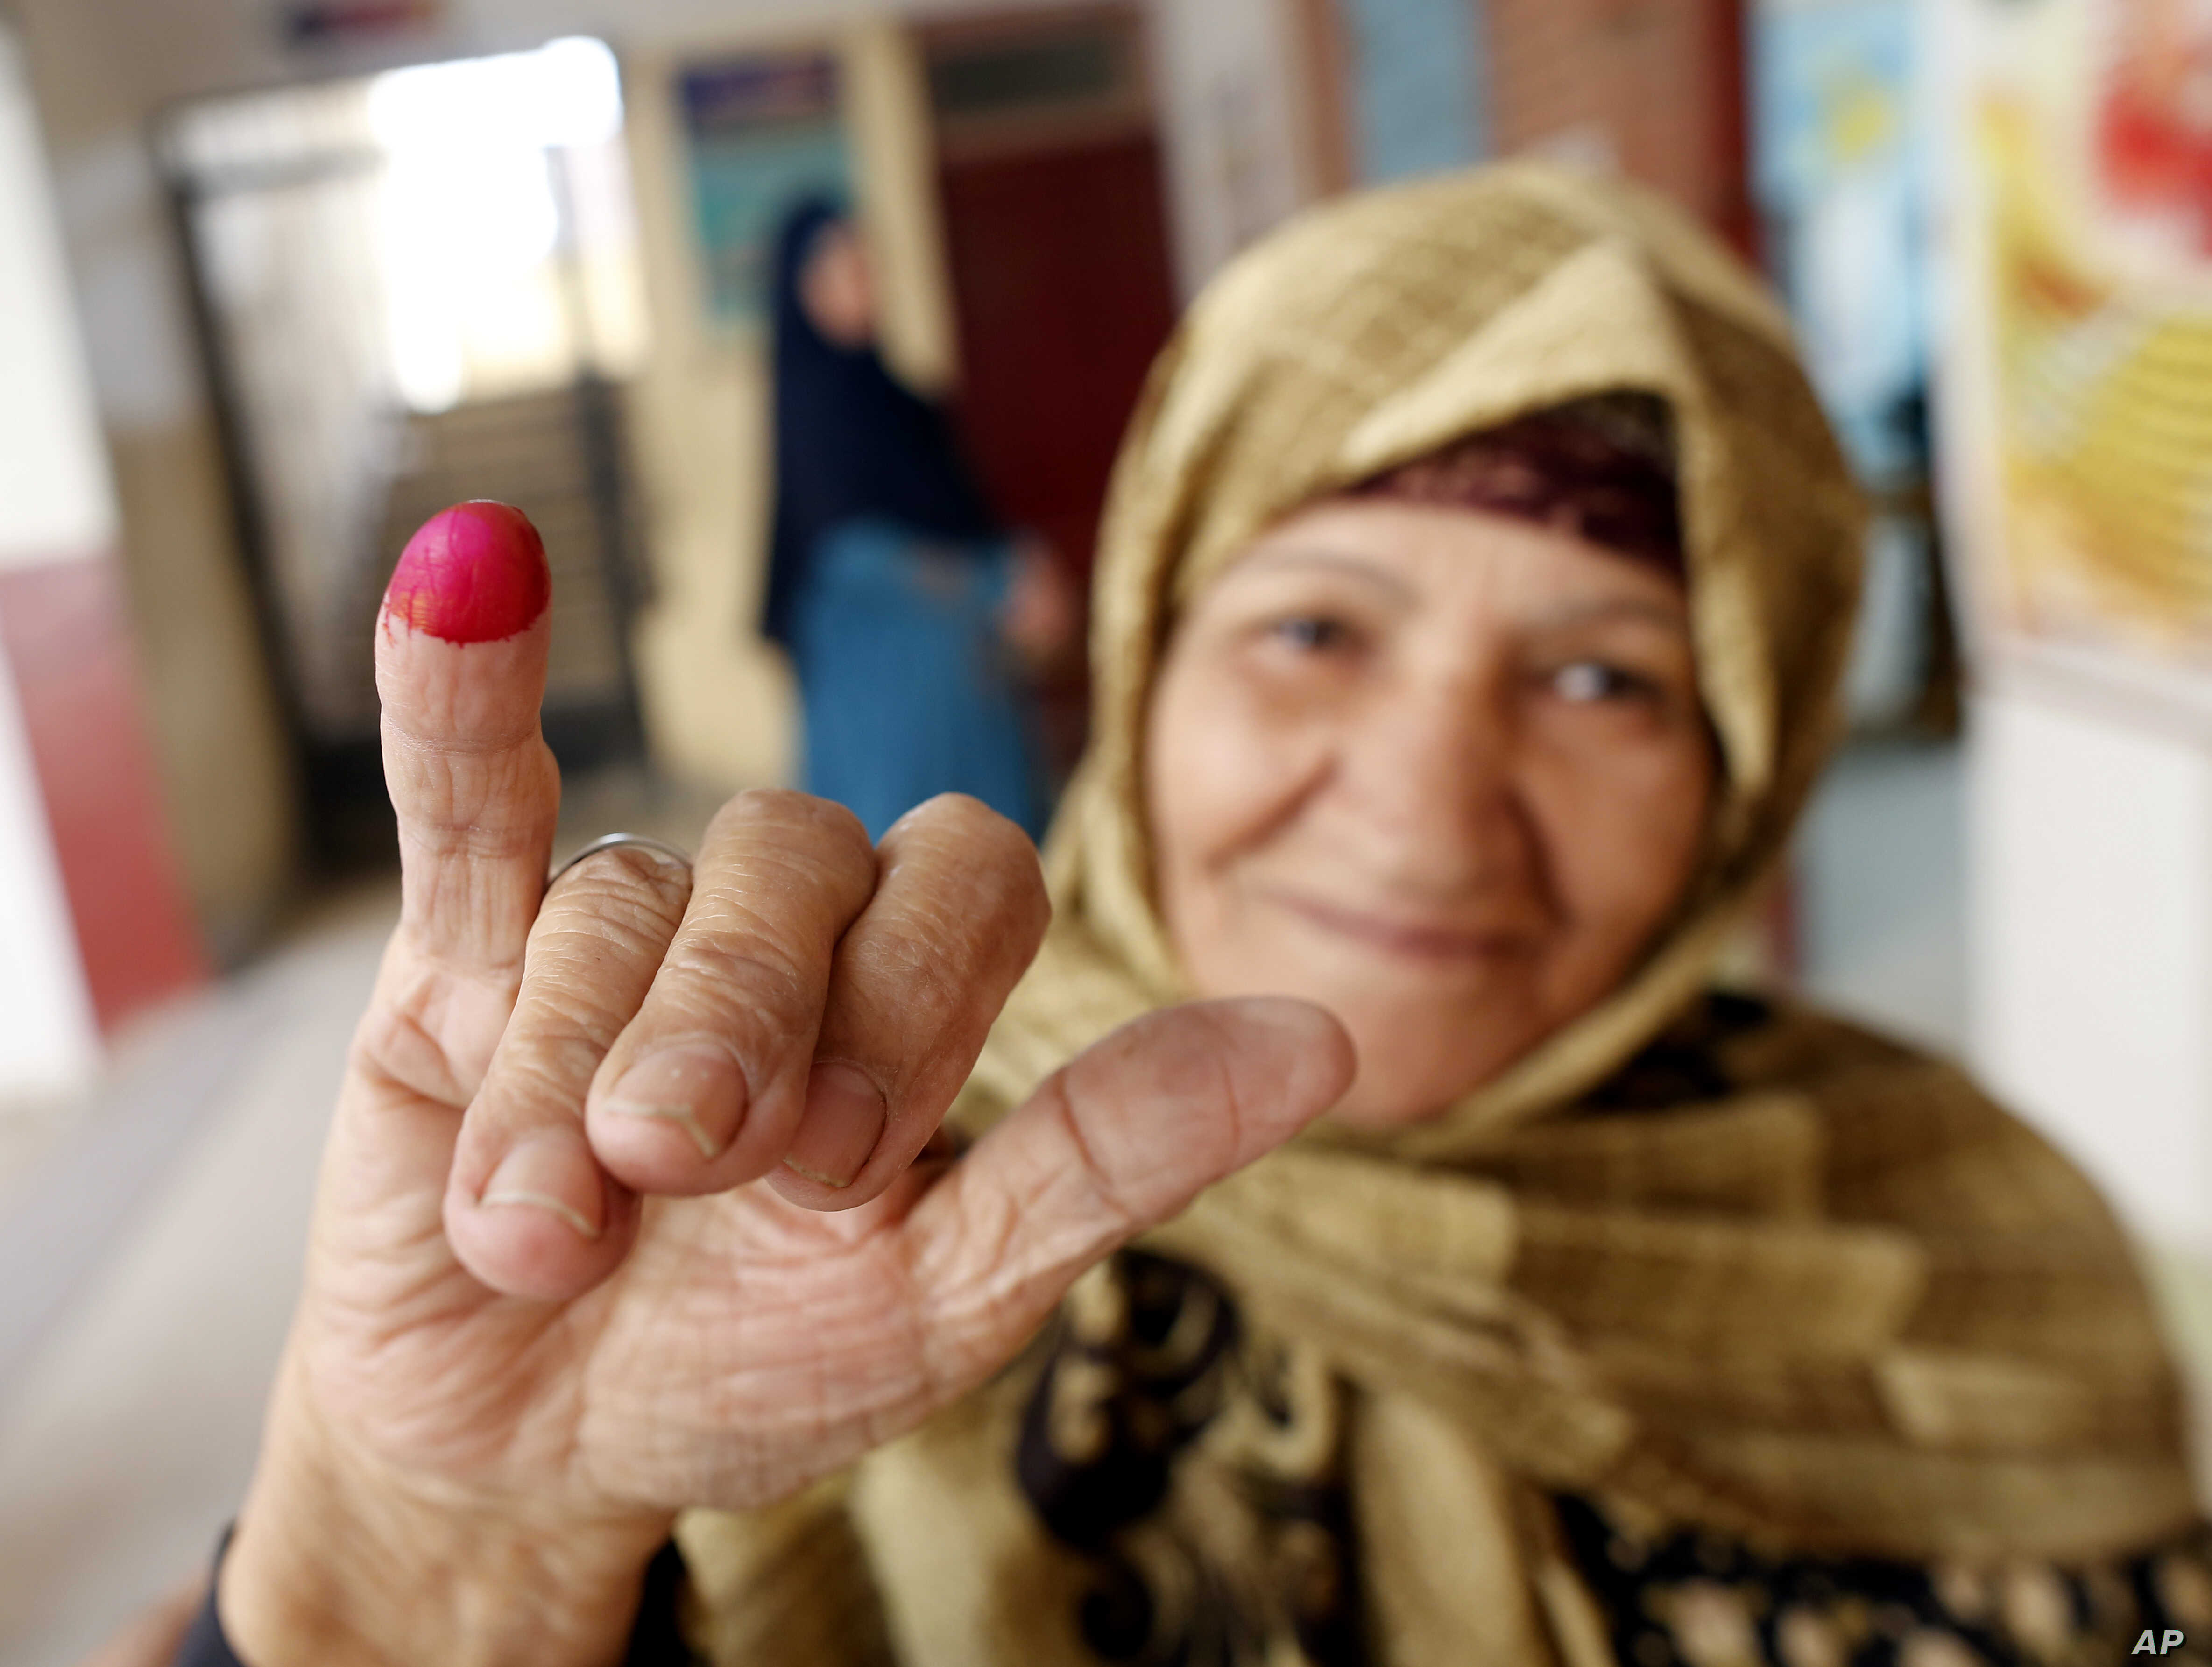 A voter displays her inked finger after she cast her ballot on constitutional amendments during the second day of three-day voting at polling station in Cairo, Egypt, April 21, 2019.